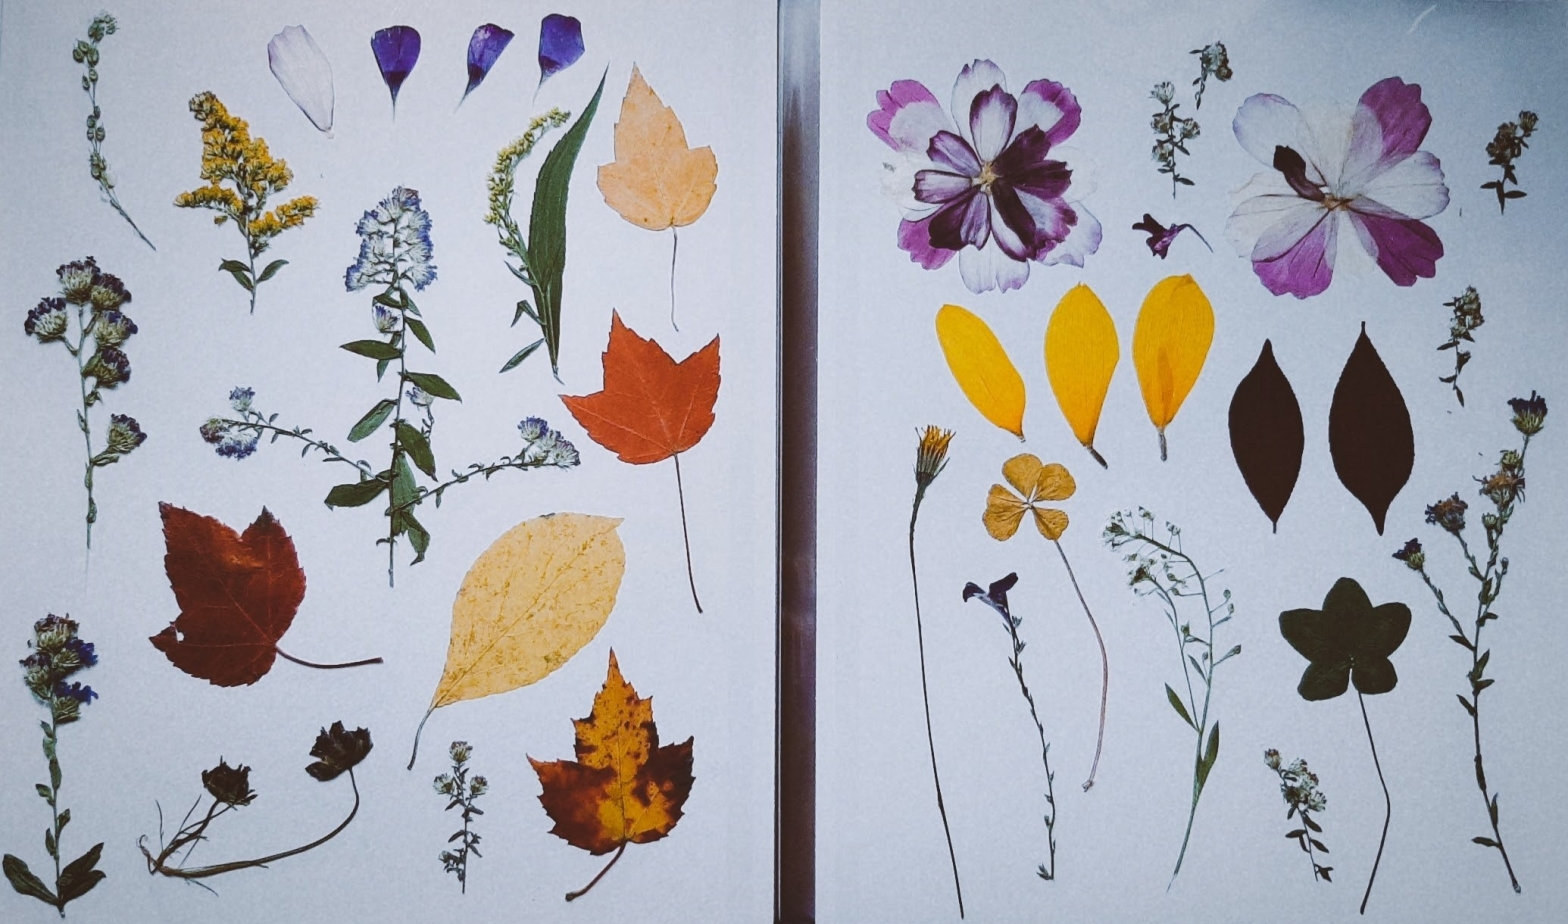 About 25 pressed flowers and plants such as leaves, four leaf clovers, and flower petals on a white background.